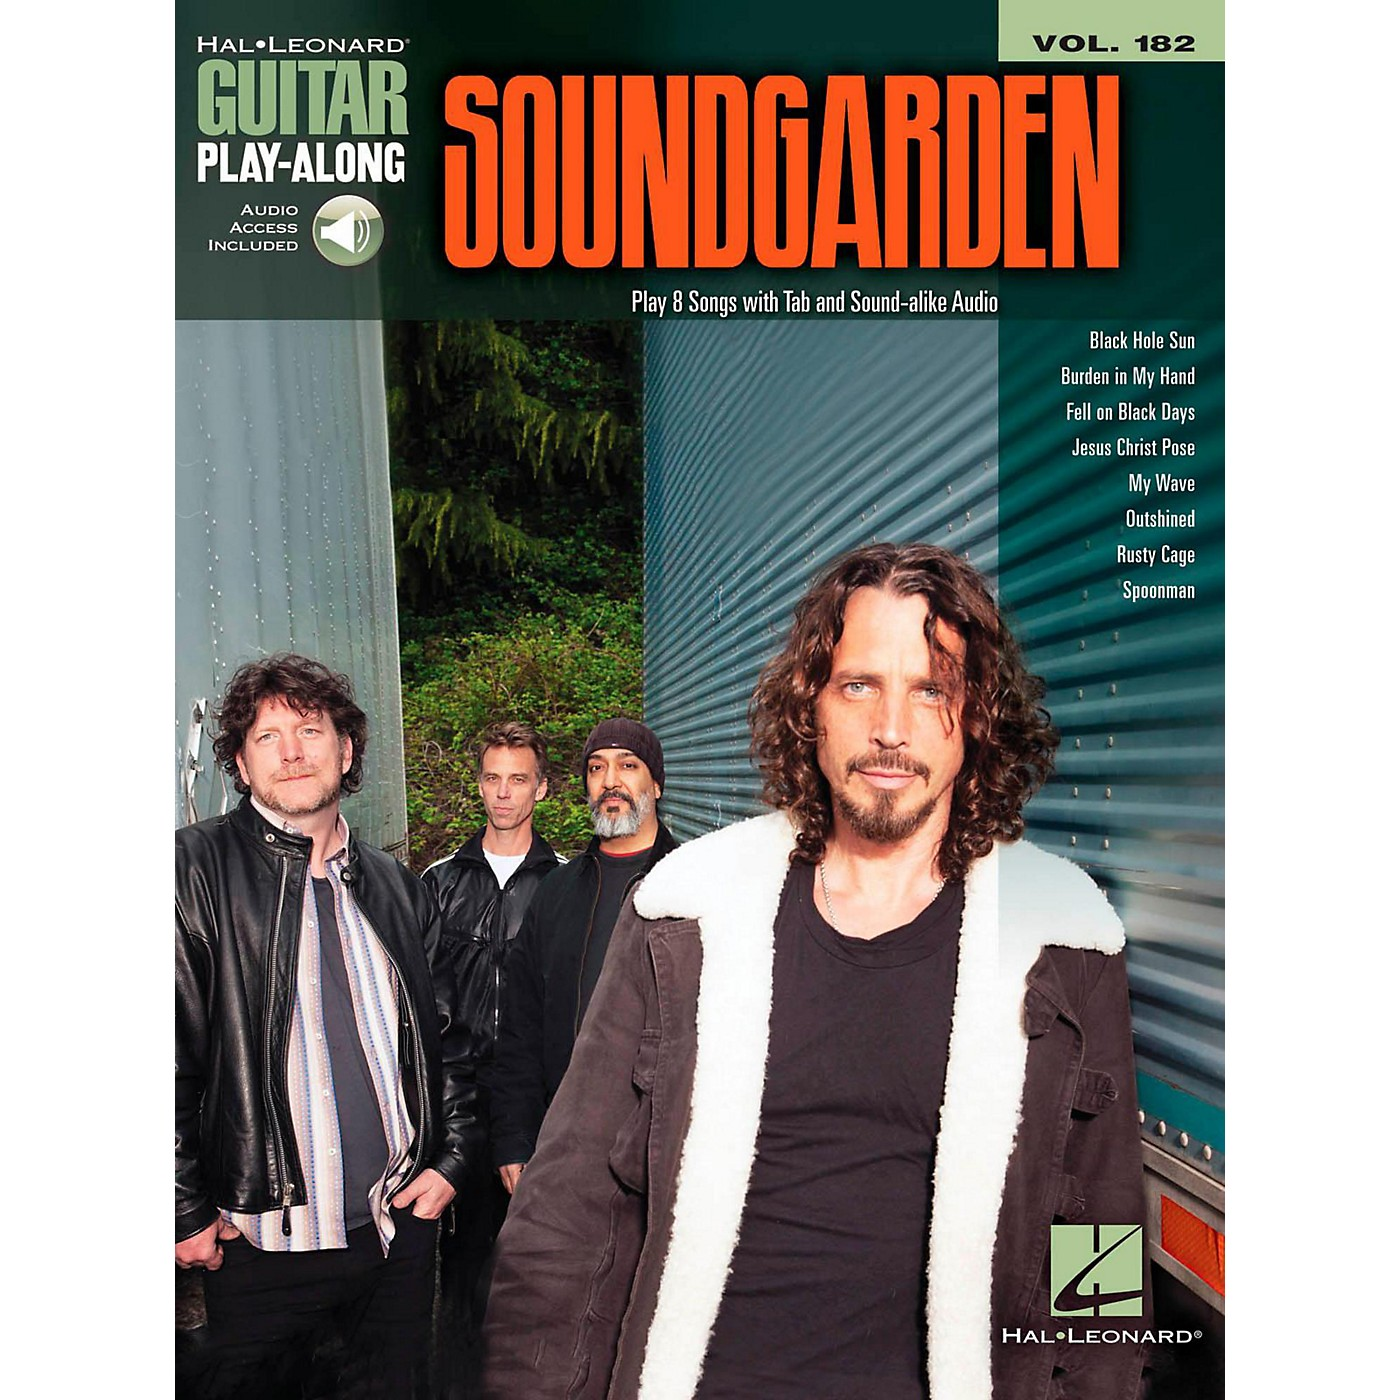 Hal Leonard Soundgarden - Guitar Play-Along Vol. 182 Book/Online Audio thumbnail